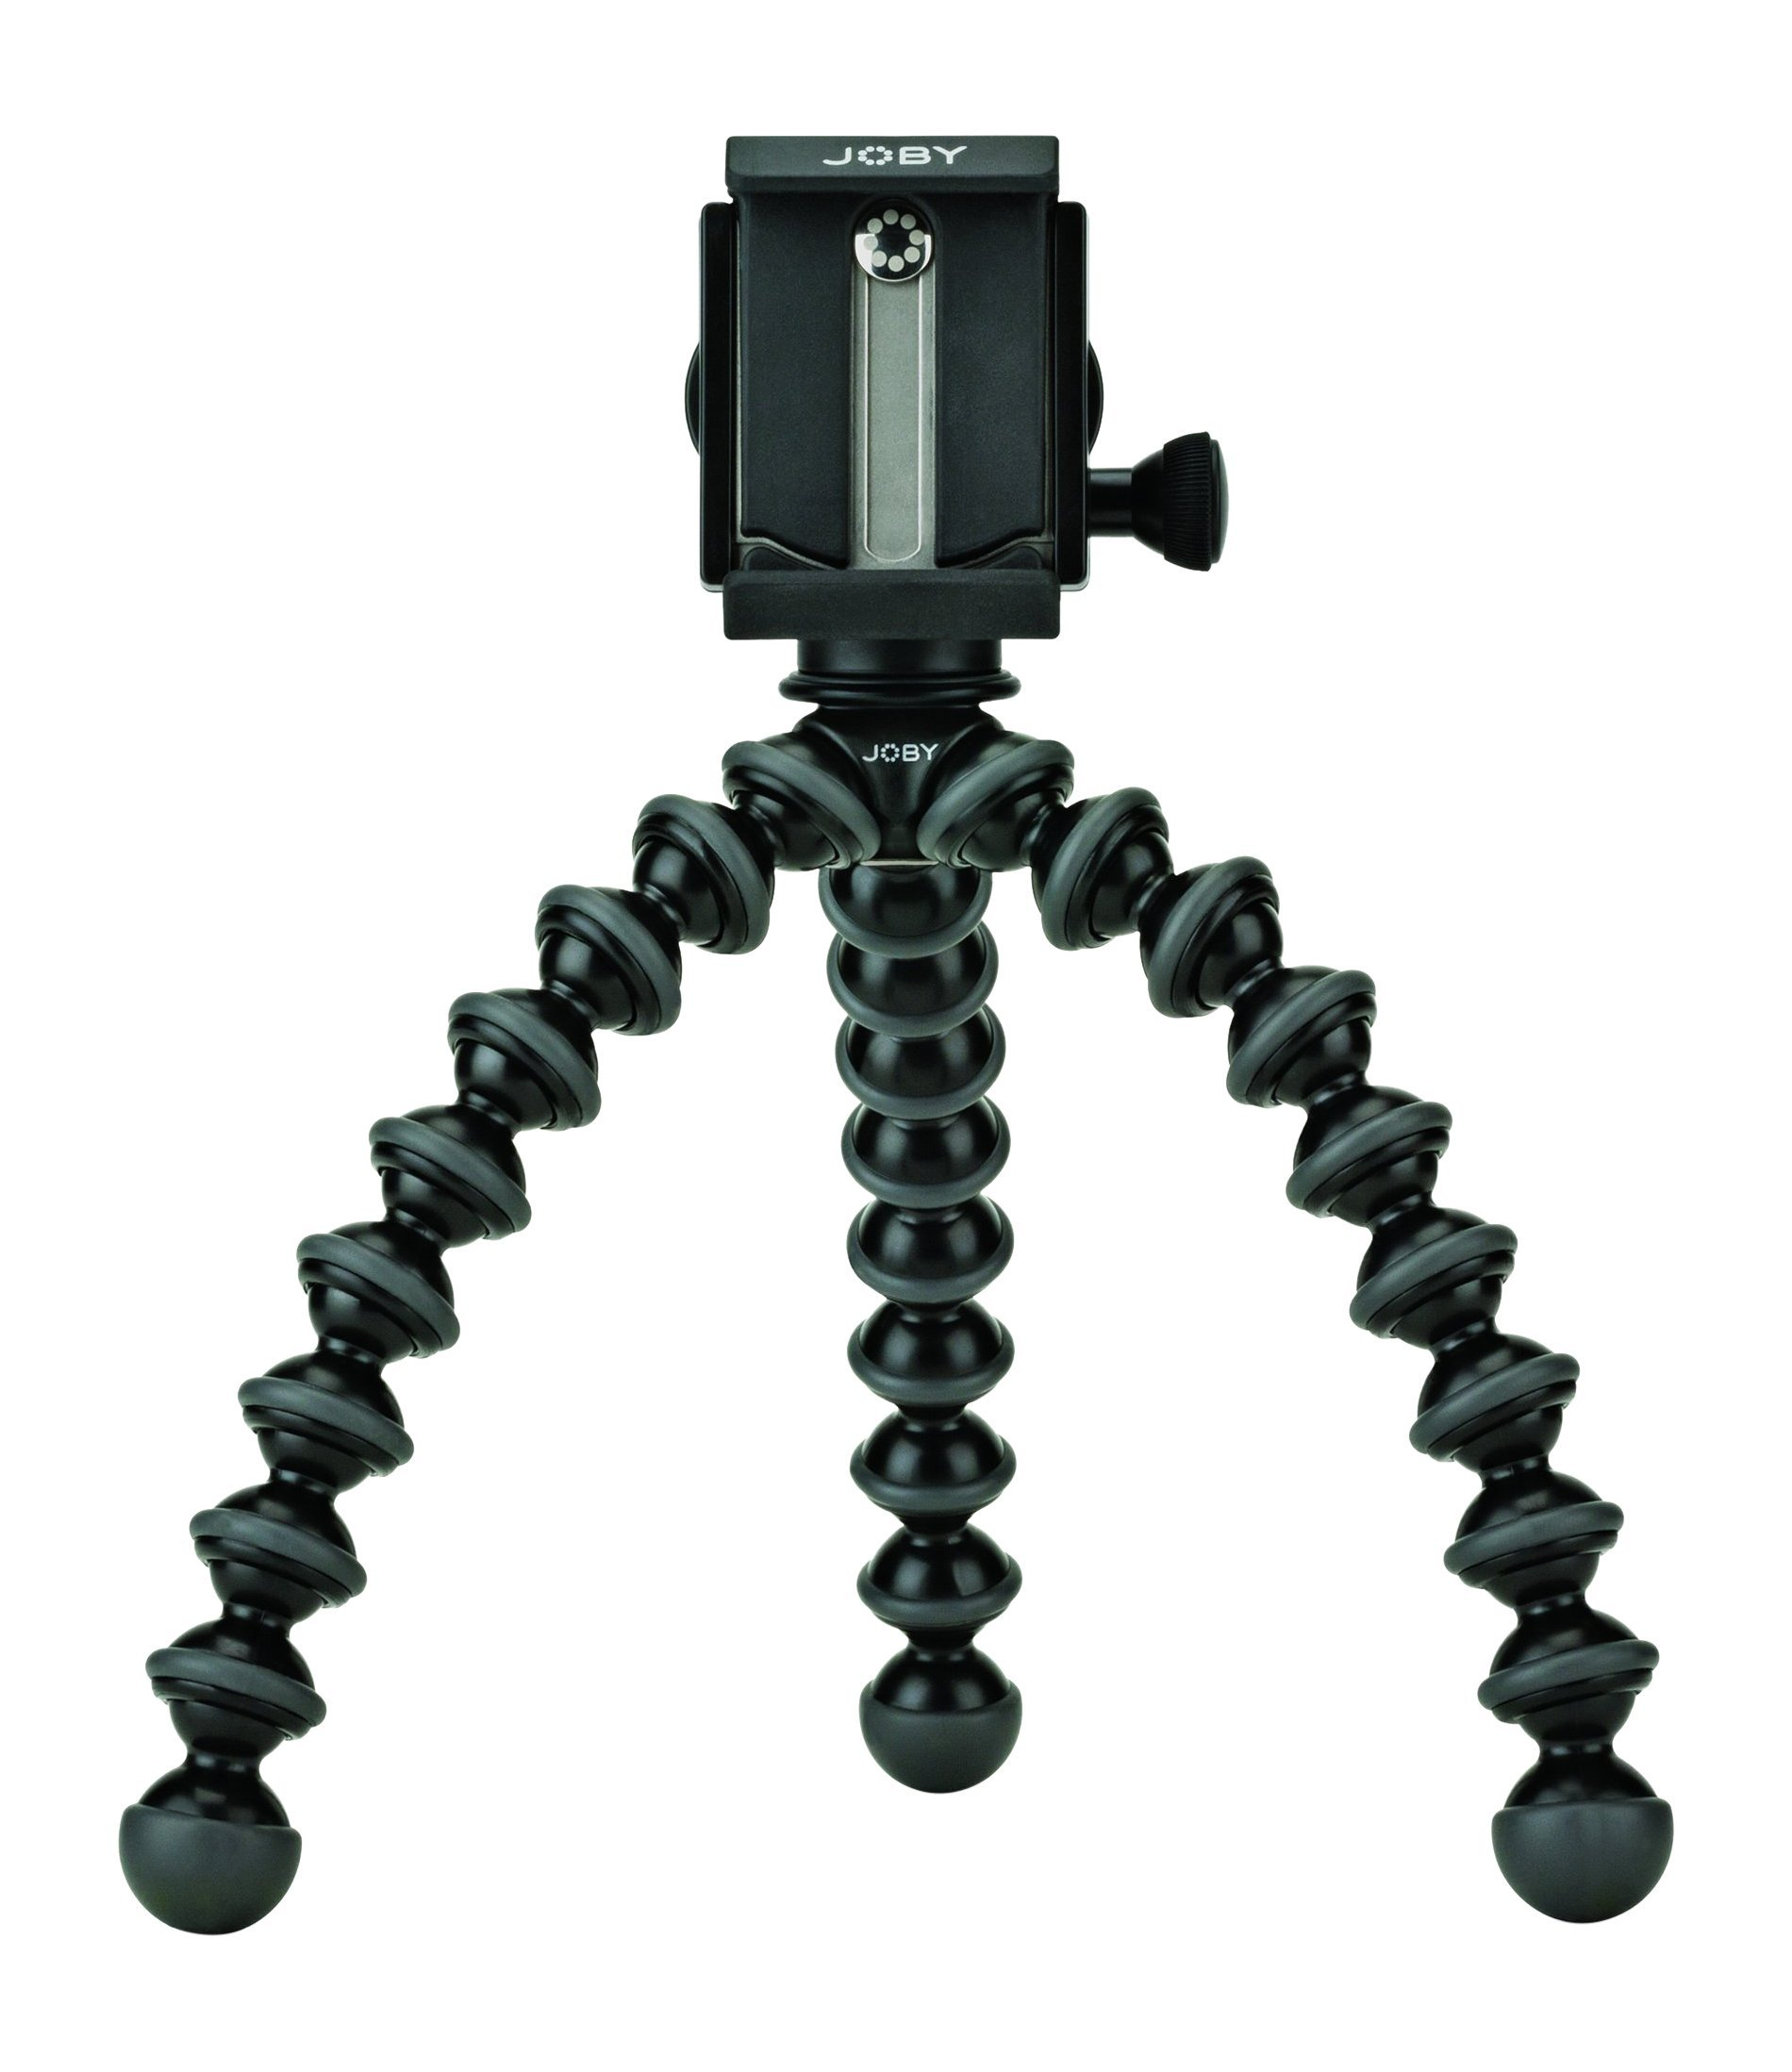 GripTight GorillaPod Stand PRO: Premium Clamping Mount and Tripod with Universal Smartphone Compatibility for iPhone SE to iPhone 8 Plus, Google Pixel, Samsung Galaxy S8 and More